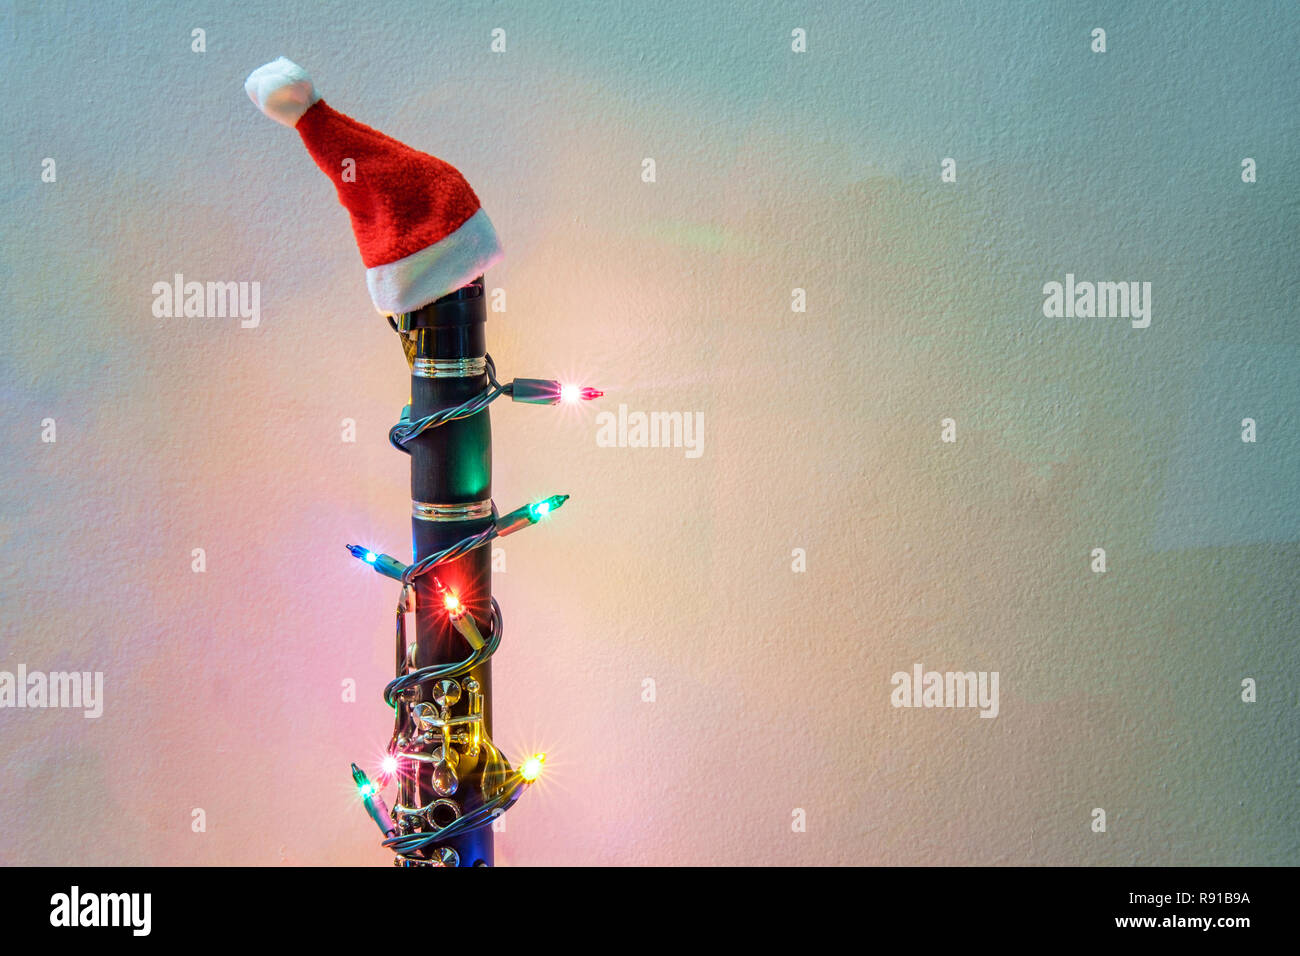 1ceb2a8aaaa7b Seasonal holiday musical instrument clarinet with Christmas santa hat and  lights